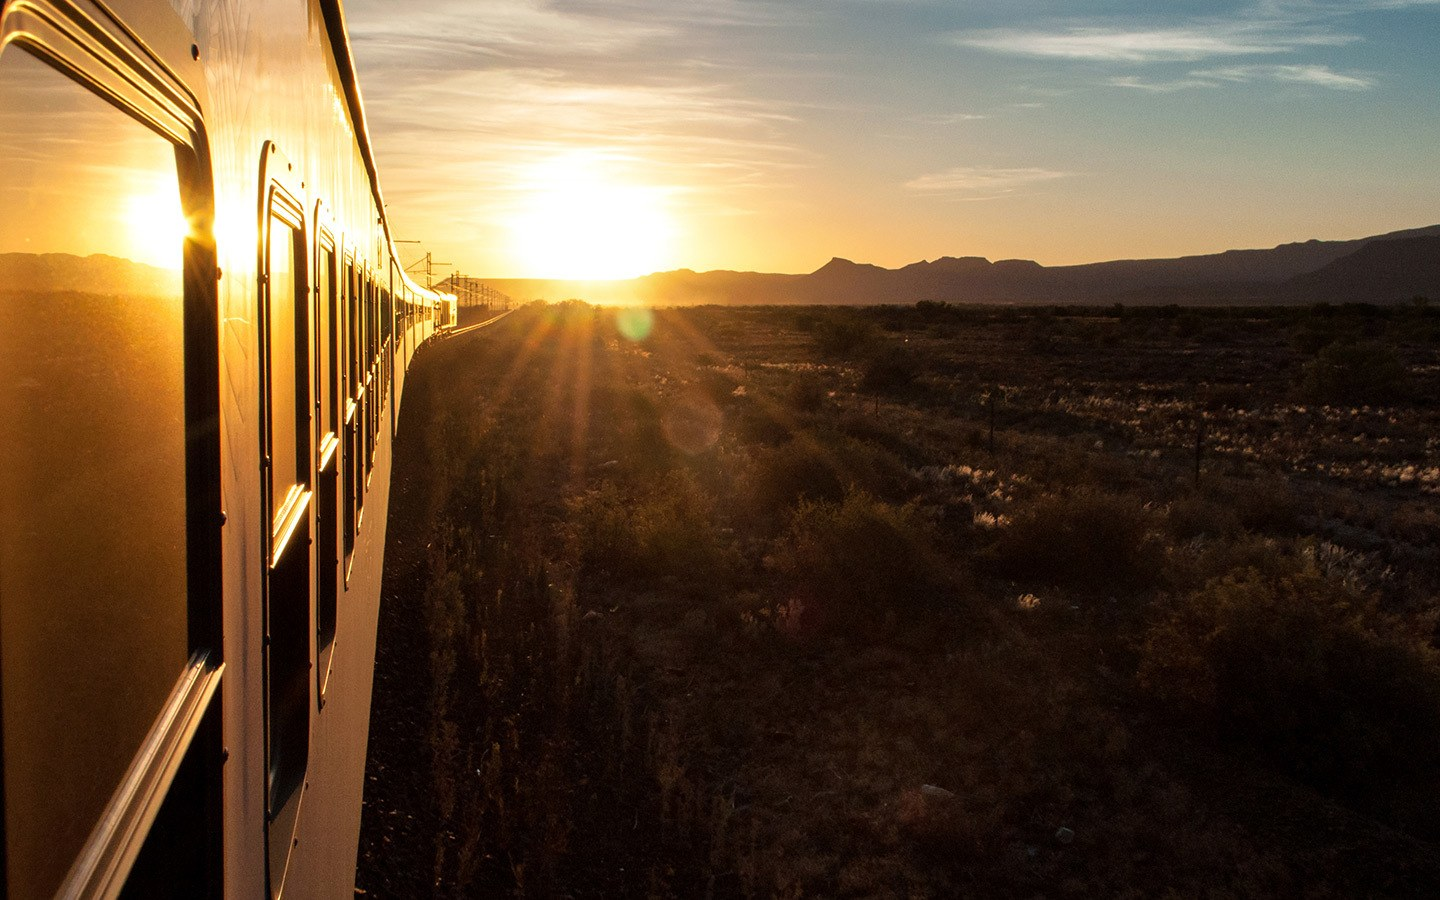 Premier Classe: South Africa's budget luxury train journey